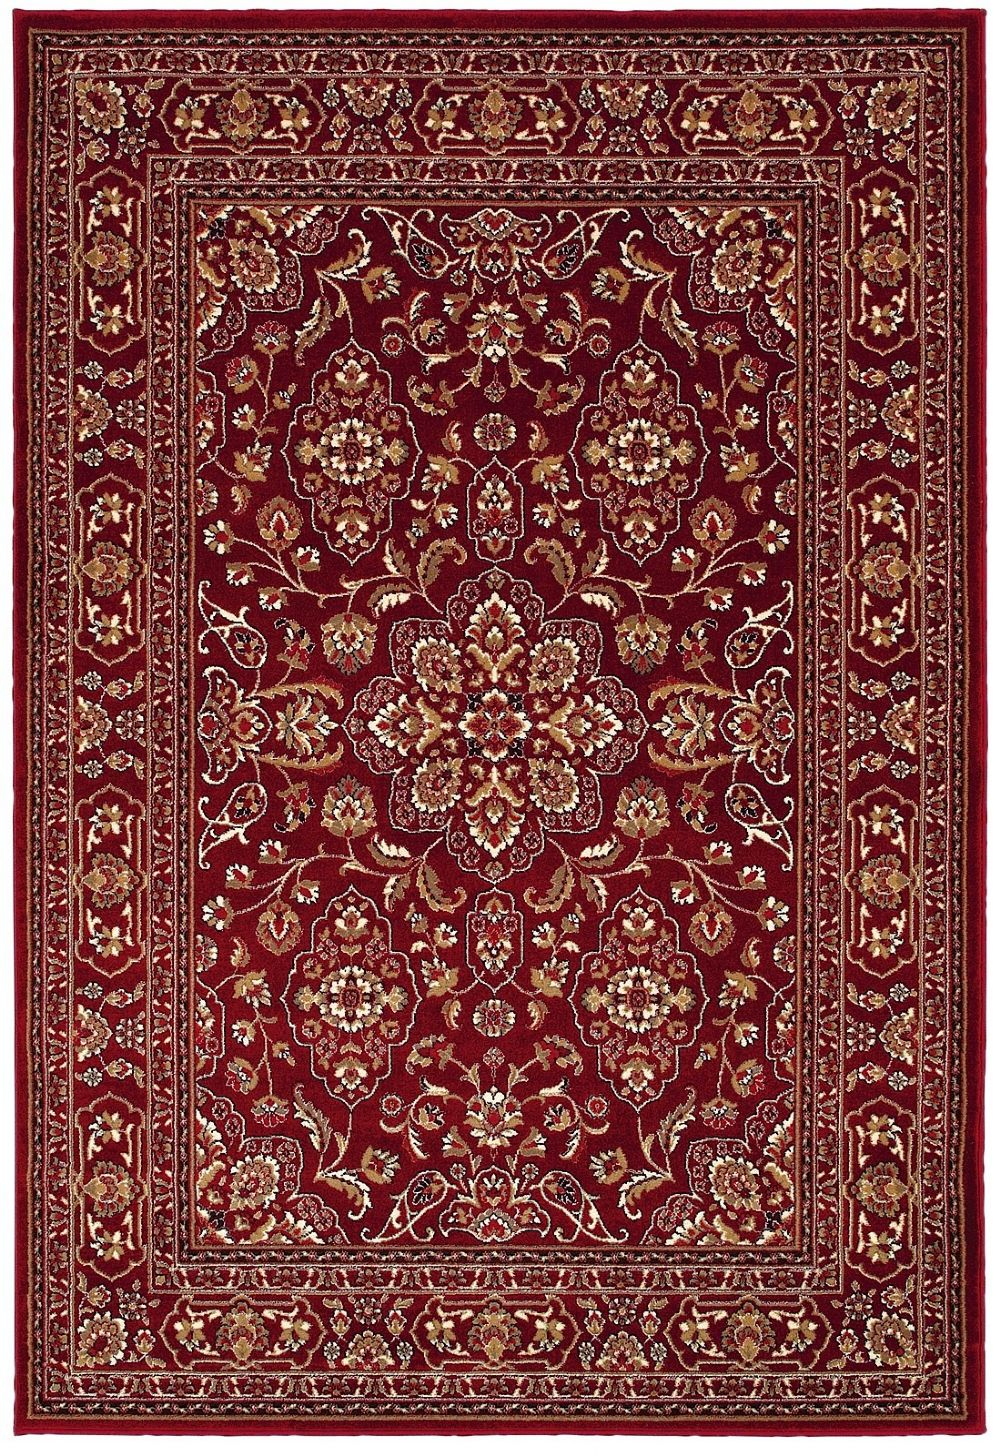 couristan odessa traditional area rug collection